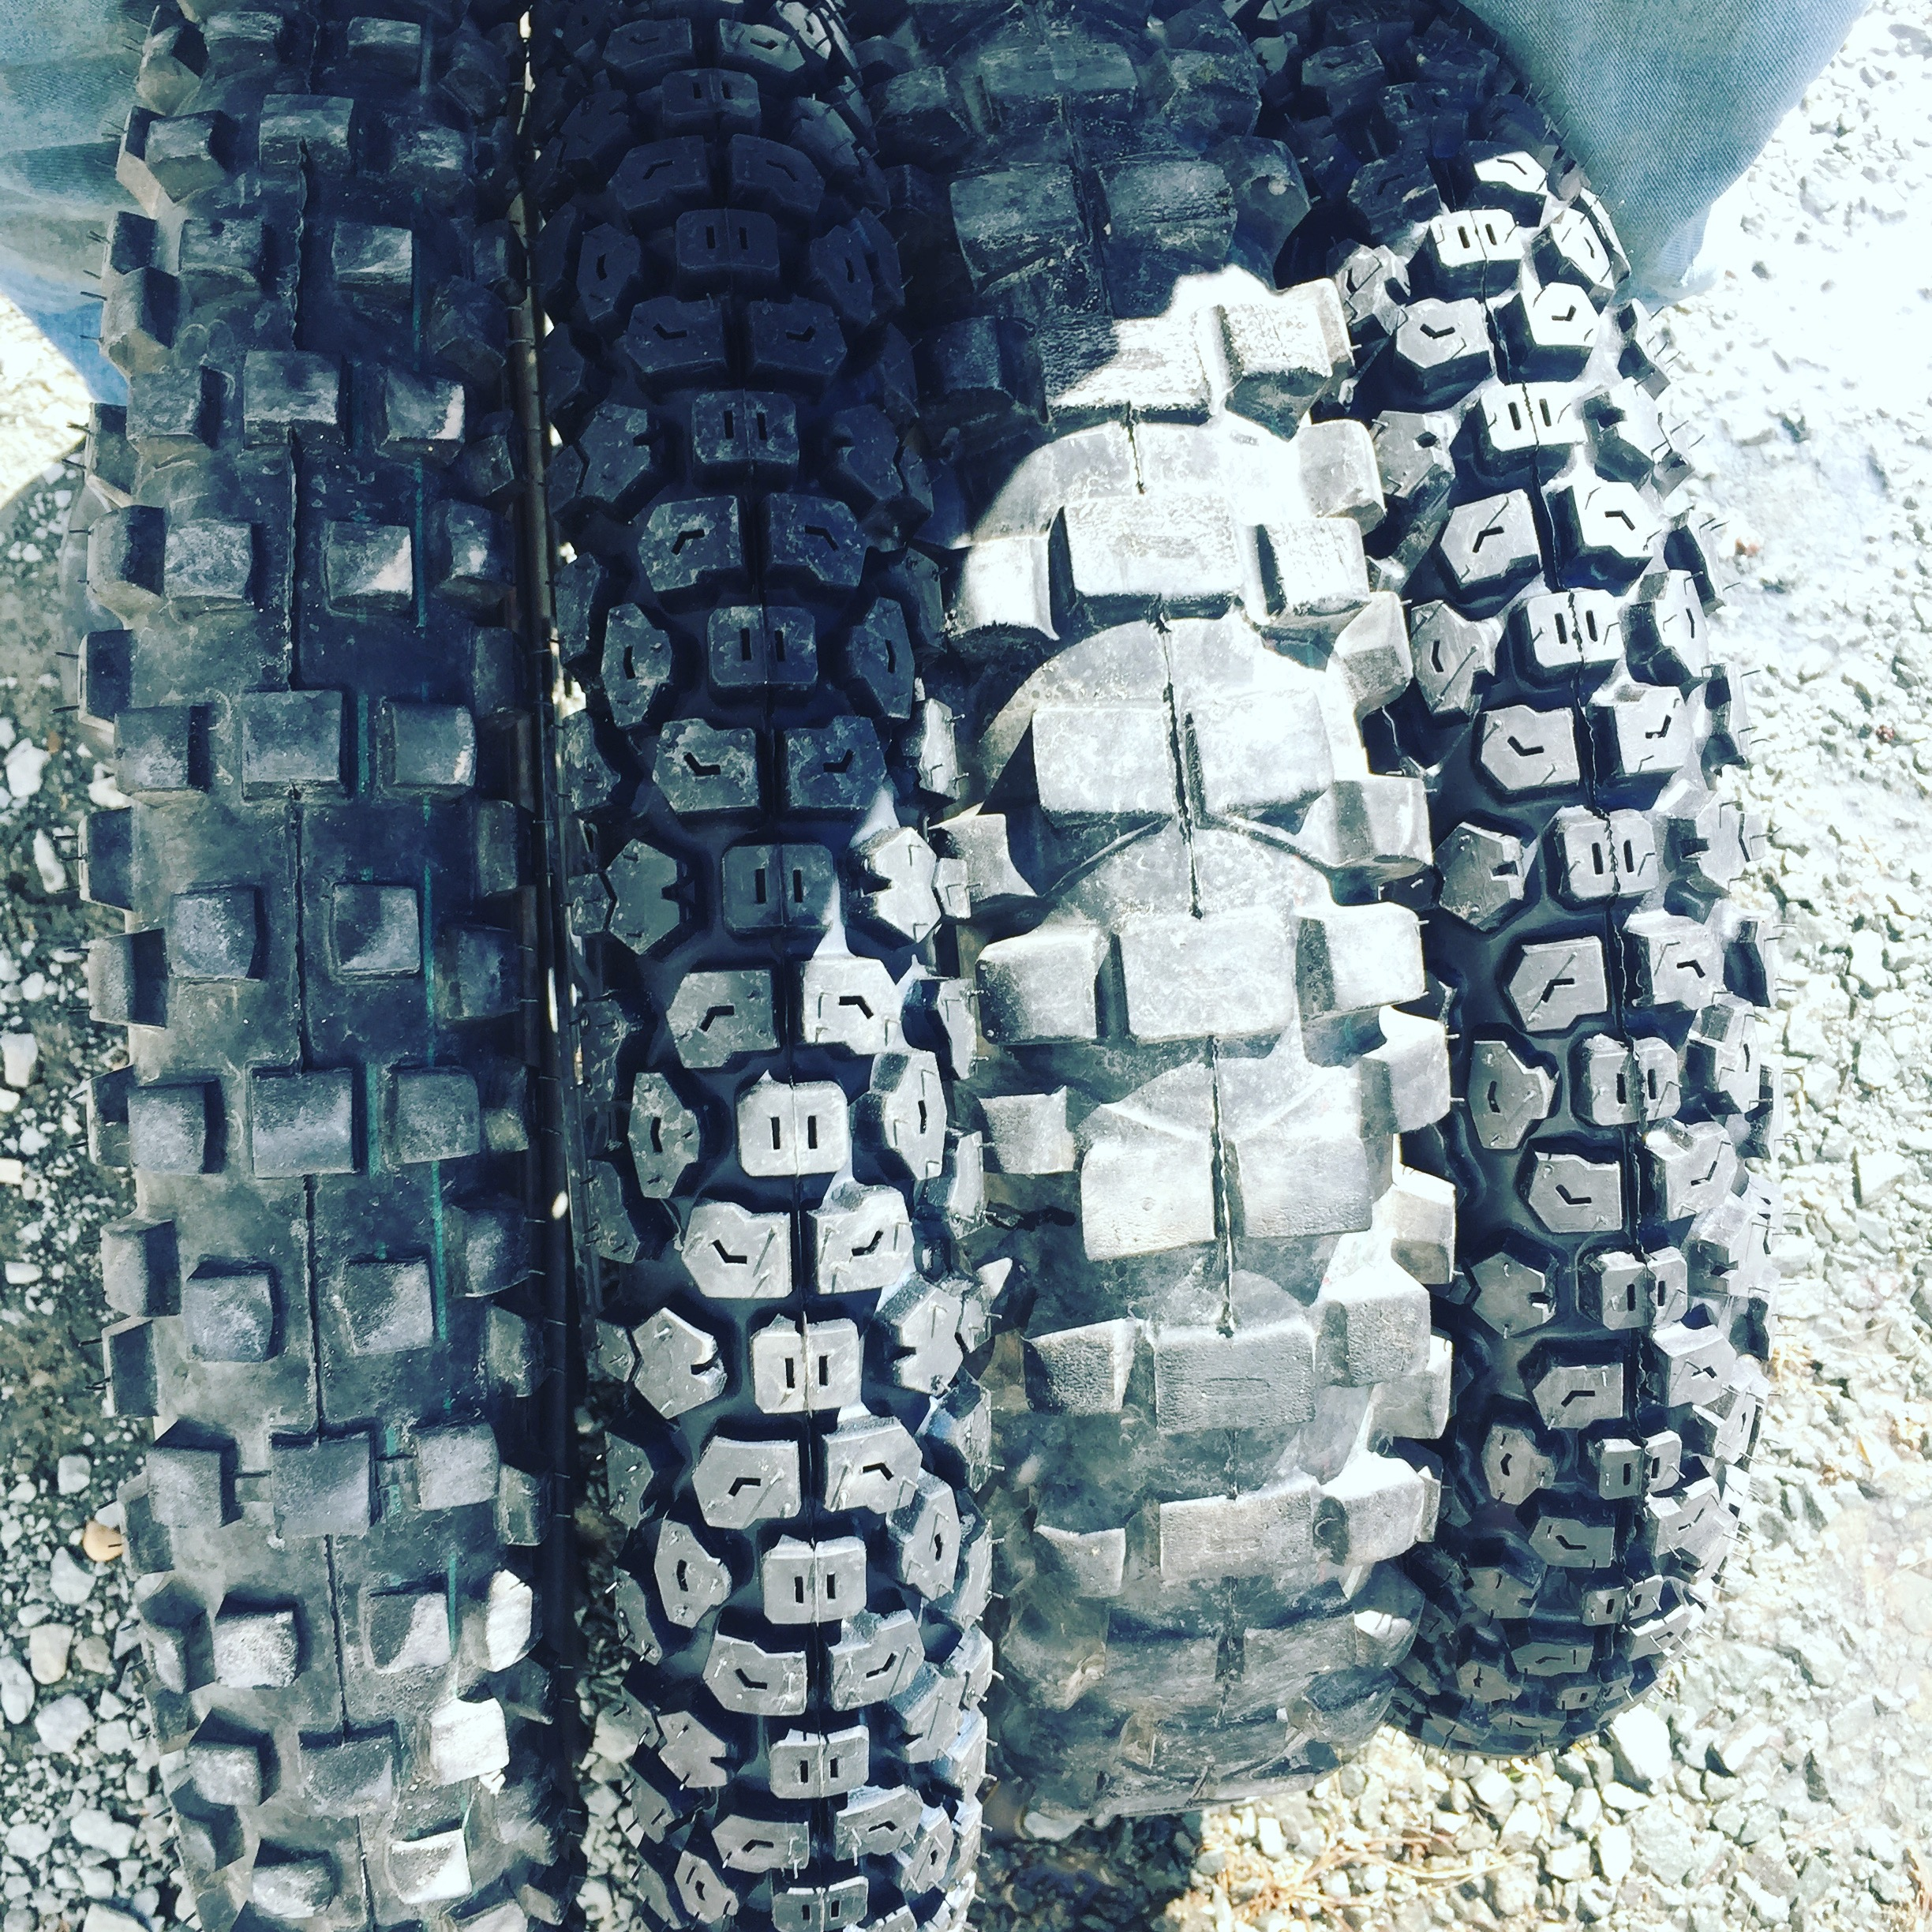 Installing Shinko 244 Tires on Hawk 250 Dual Sport